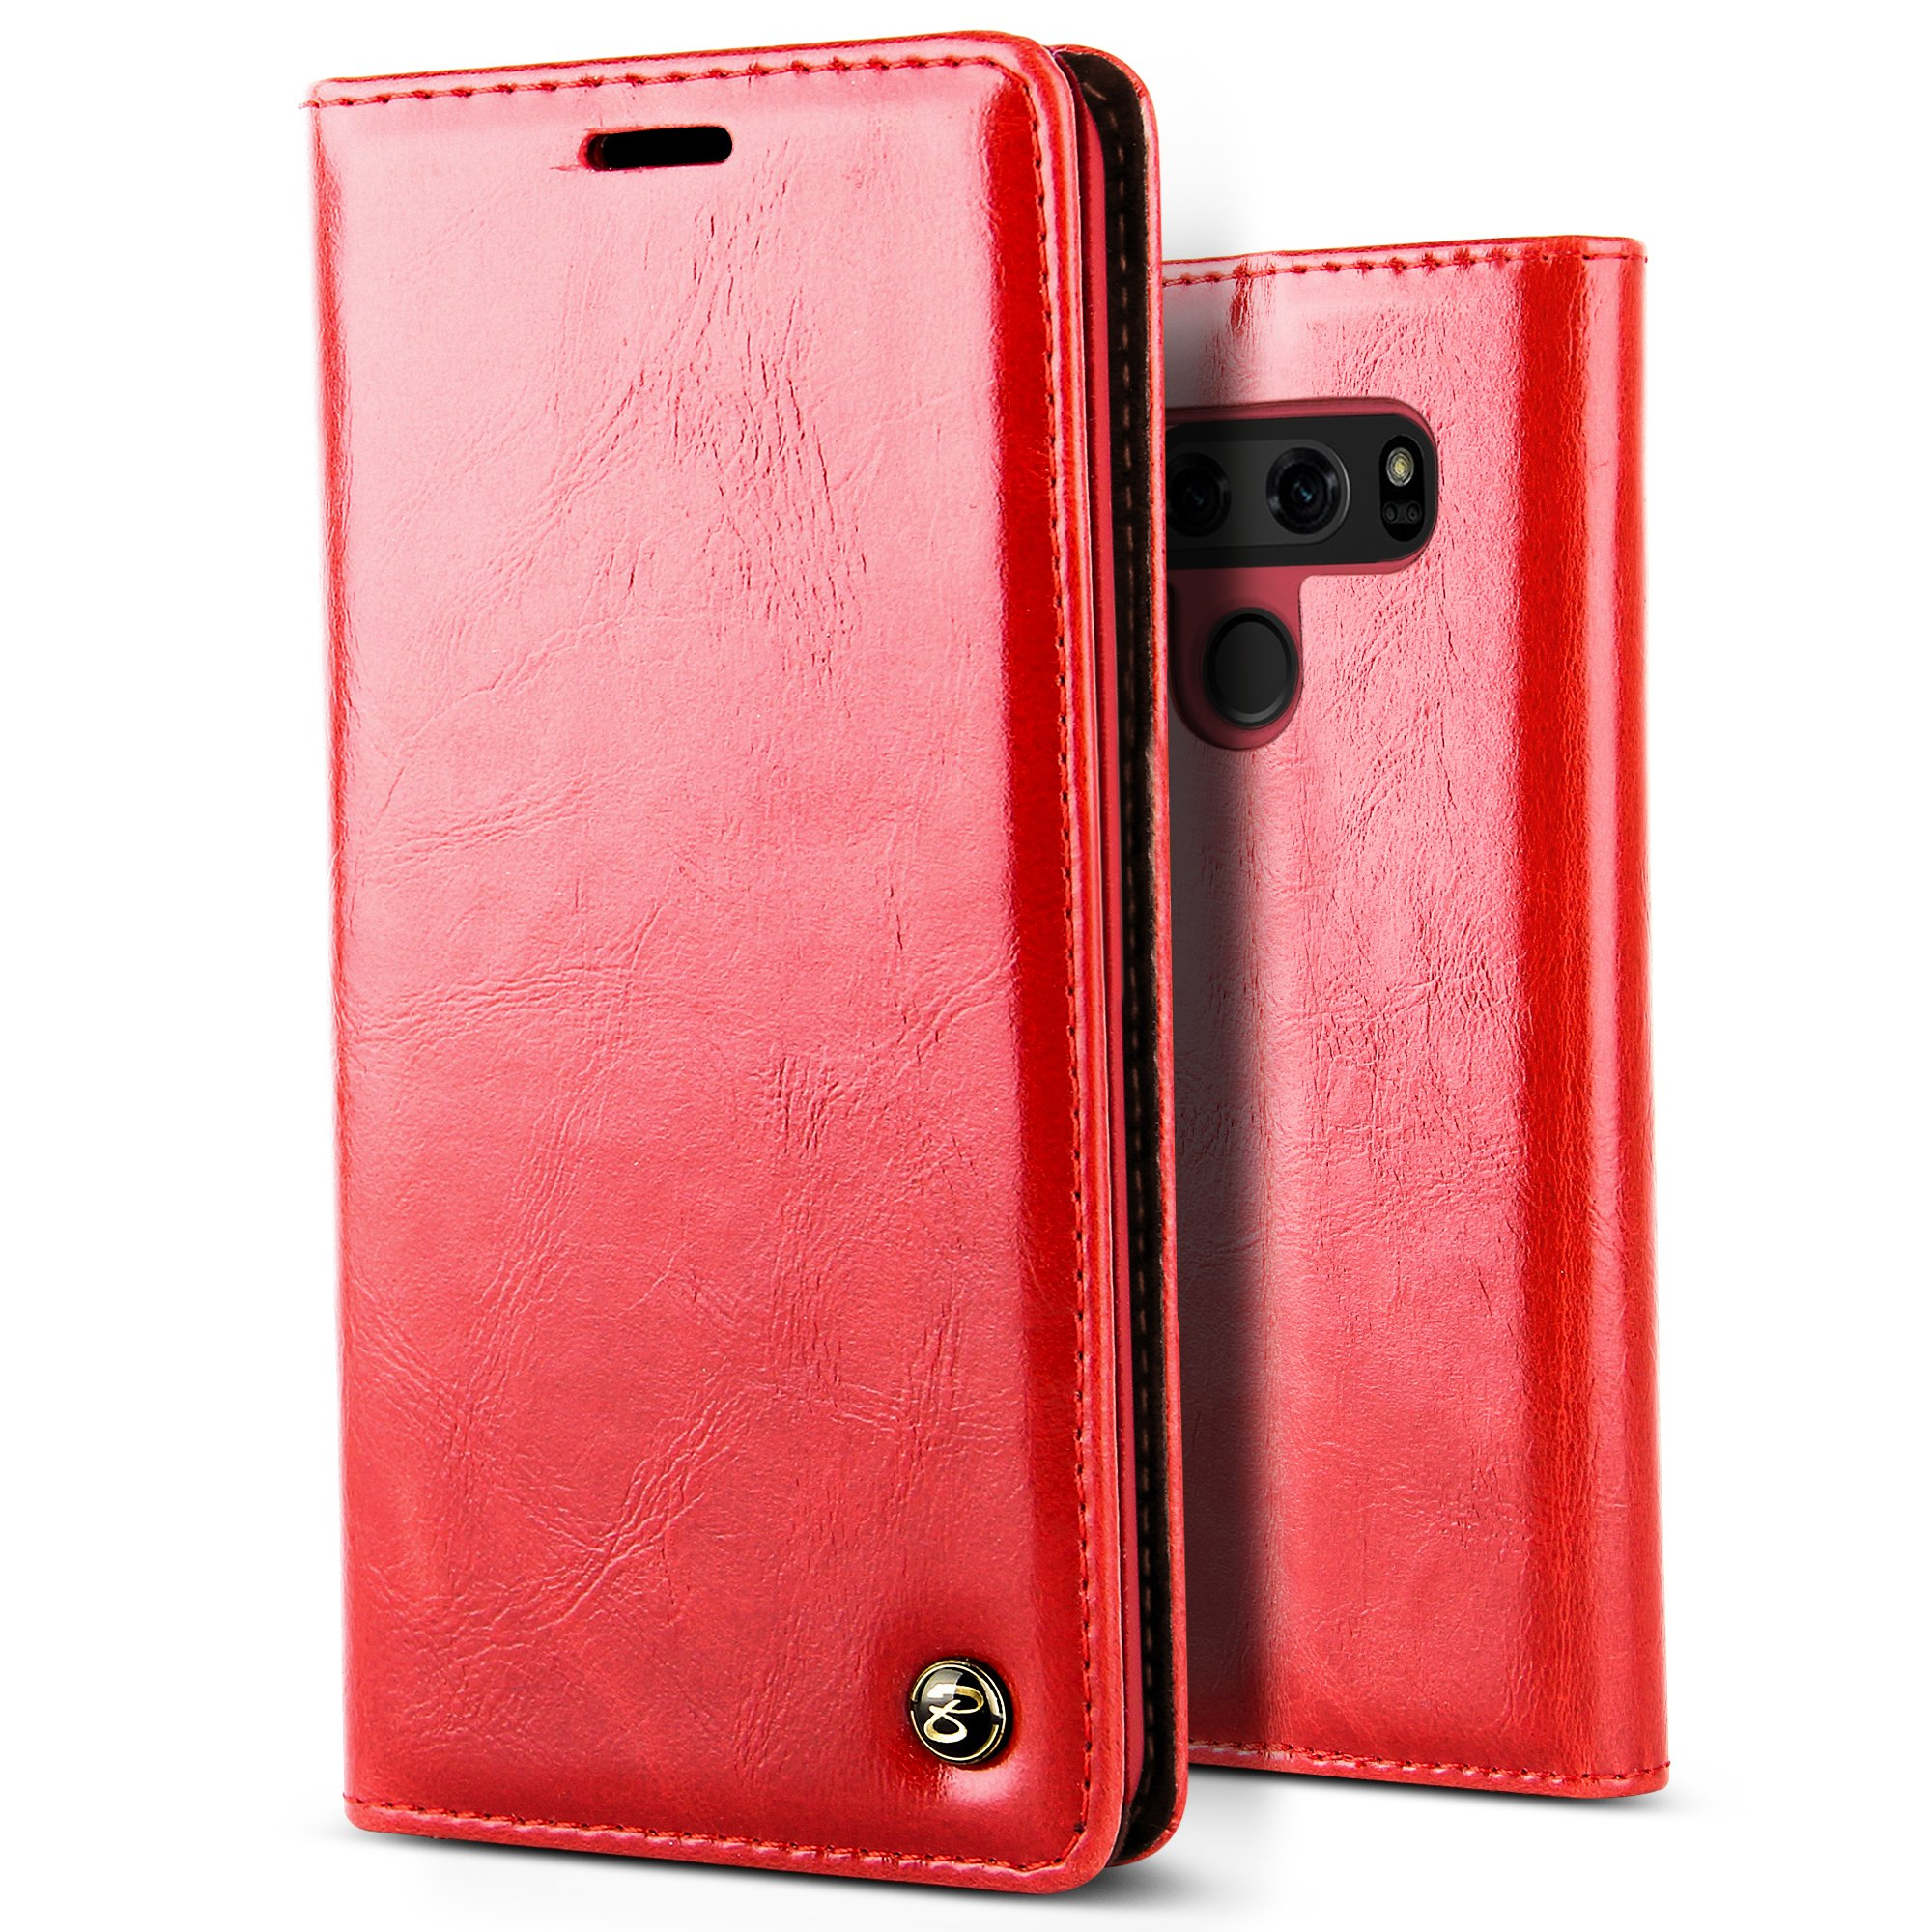 B BELK LG V30 Case, Premium Vintage Leather Wallet Phone Case [Velvet Lining] [Kickstand] [Card Slot] Classical Business Style Flip Cover for LG V30 (Red) by B BELK